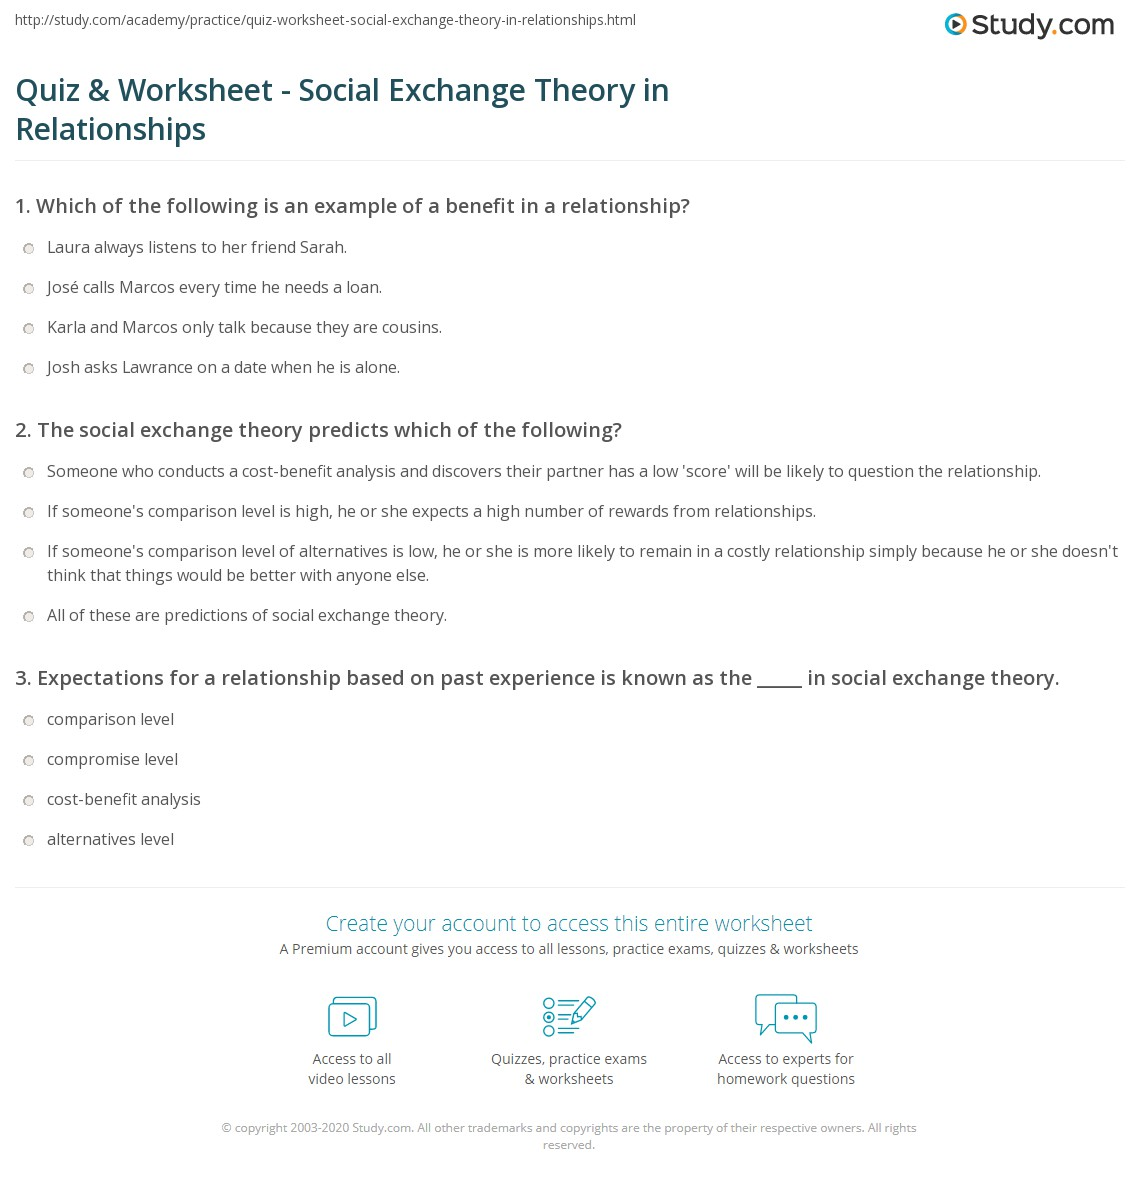 exchange theory in relationships related keywords suggestions quiz worksheet social exchange theory in relationships studycom